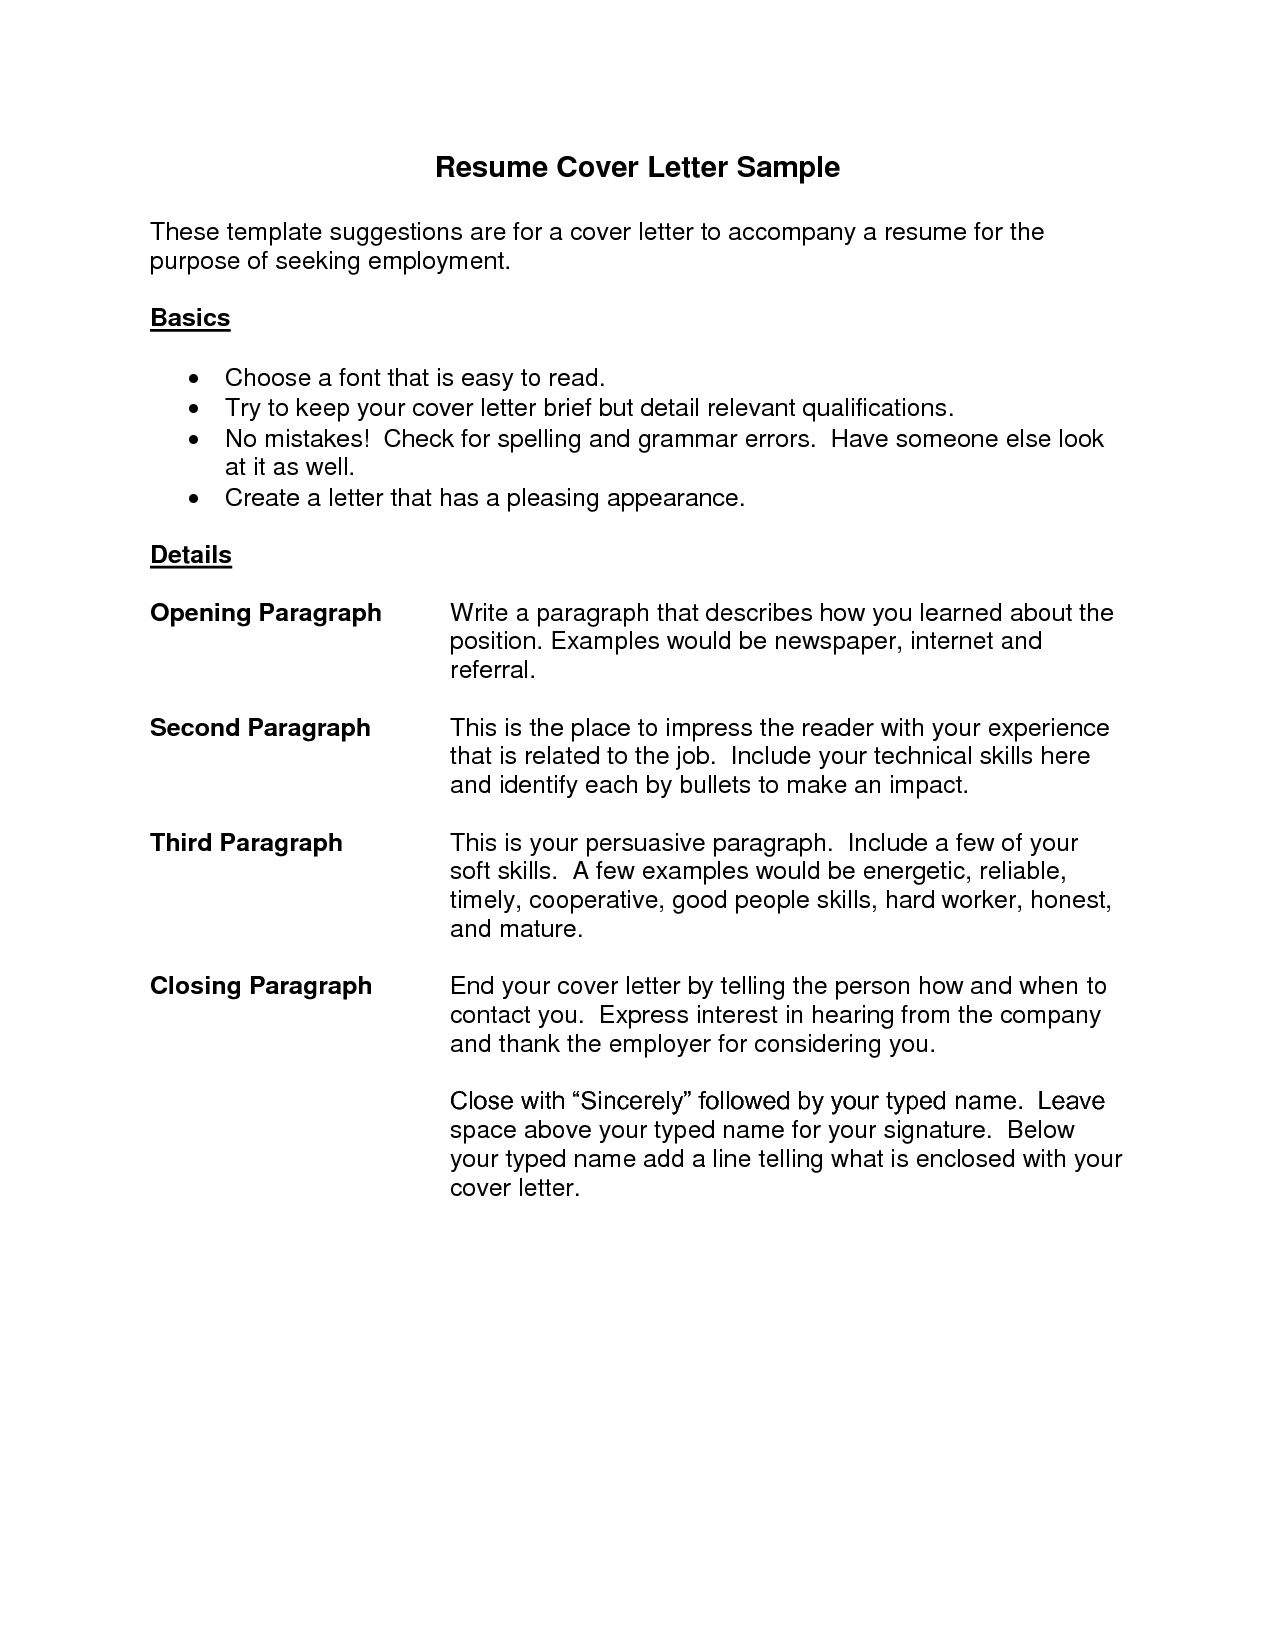 How To Make A Cover Letter And Resume Cover Letter Resume Best TemplateSimple Cover Letter Application 14